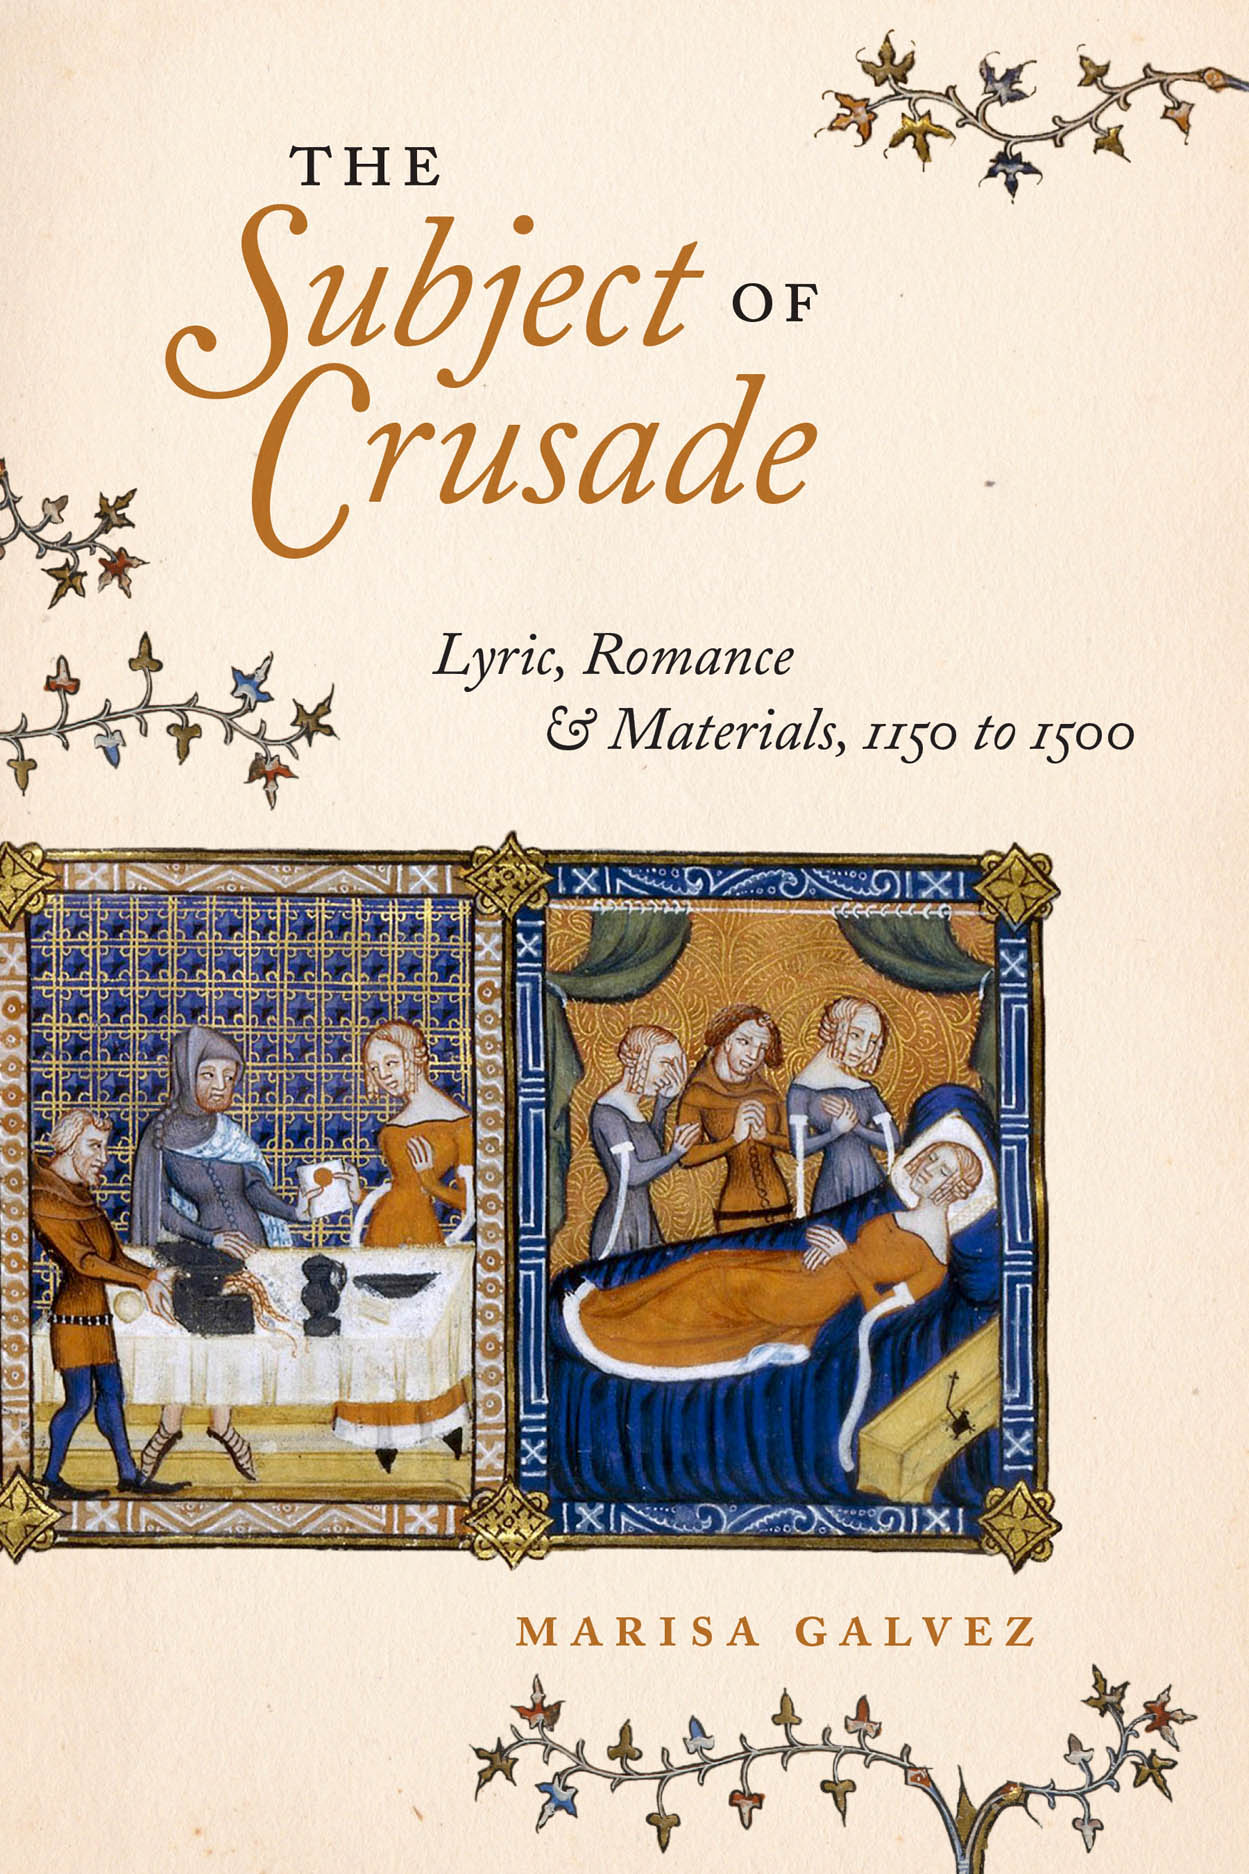 The Subject of Crusade: Lyric, Romance, and Materials, 1150 to 1500